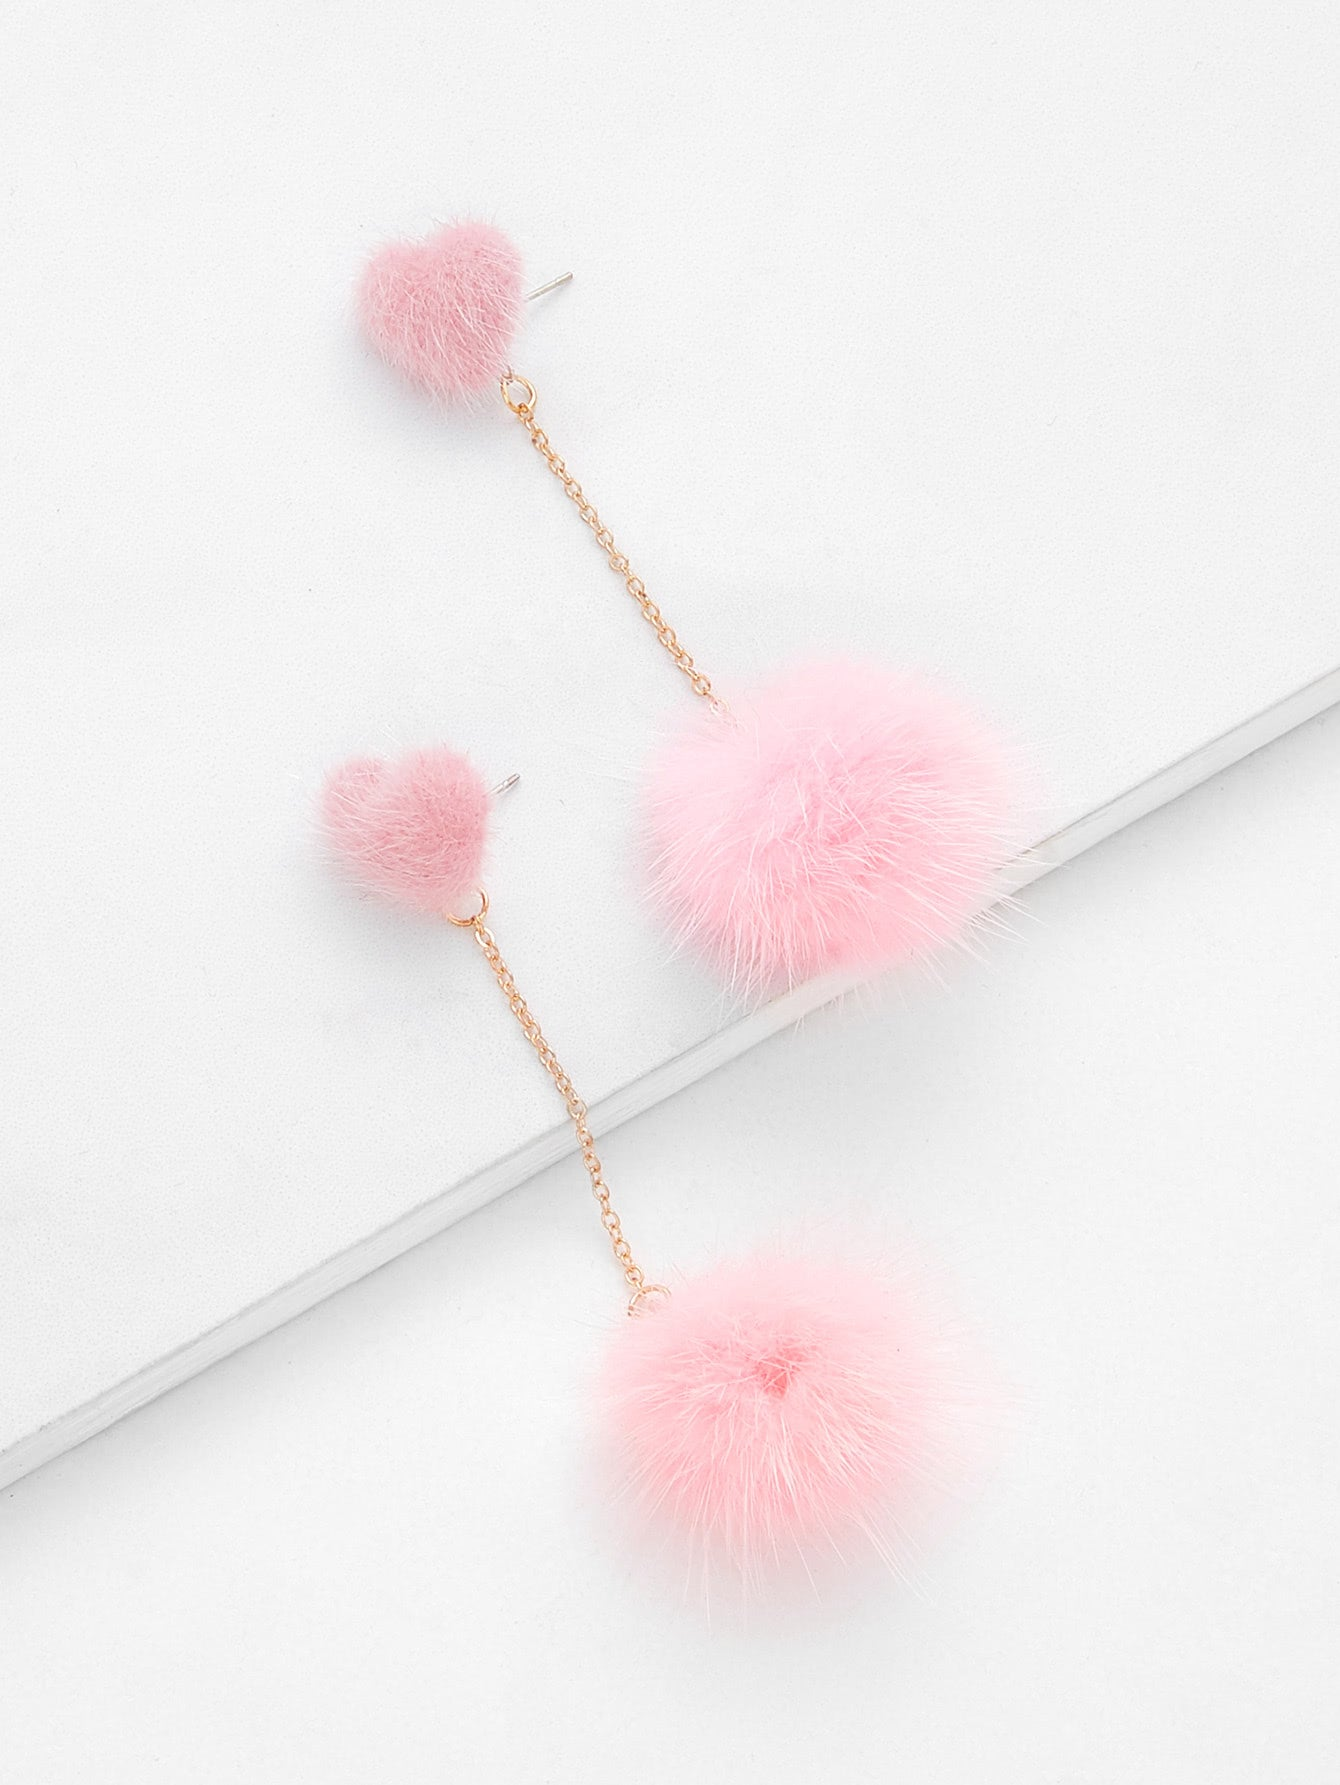 Pink Pom Pom With Heart Top Chain Dangle Earrings 1 Pair